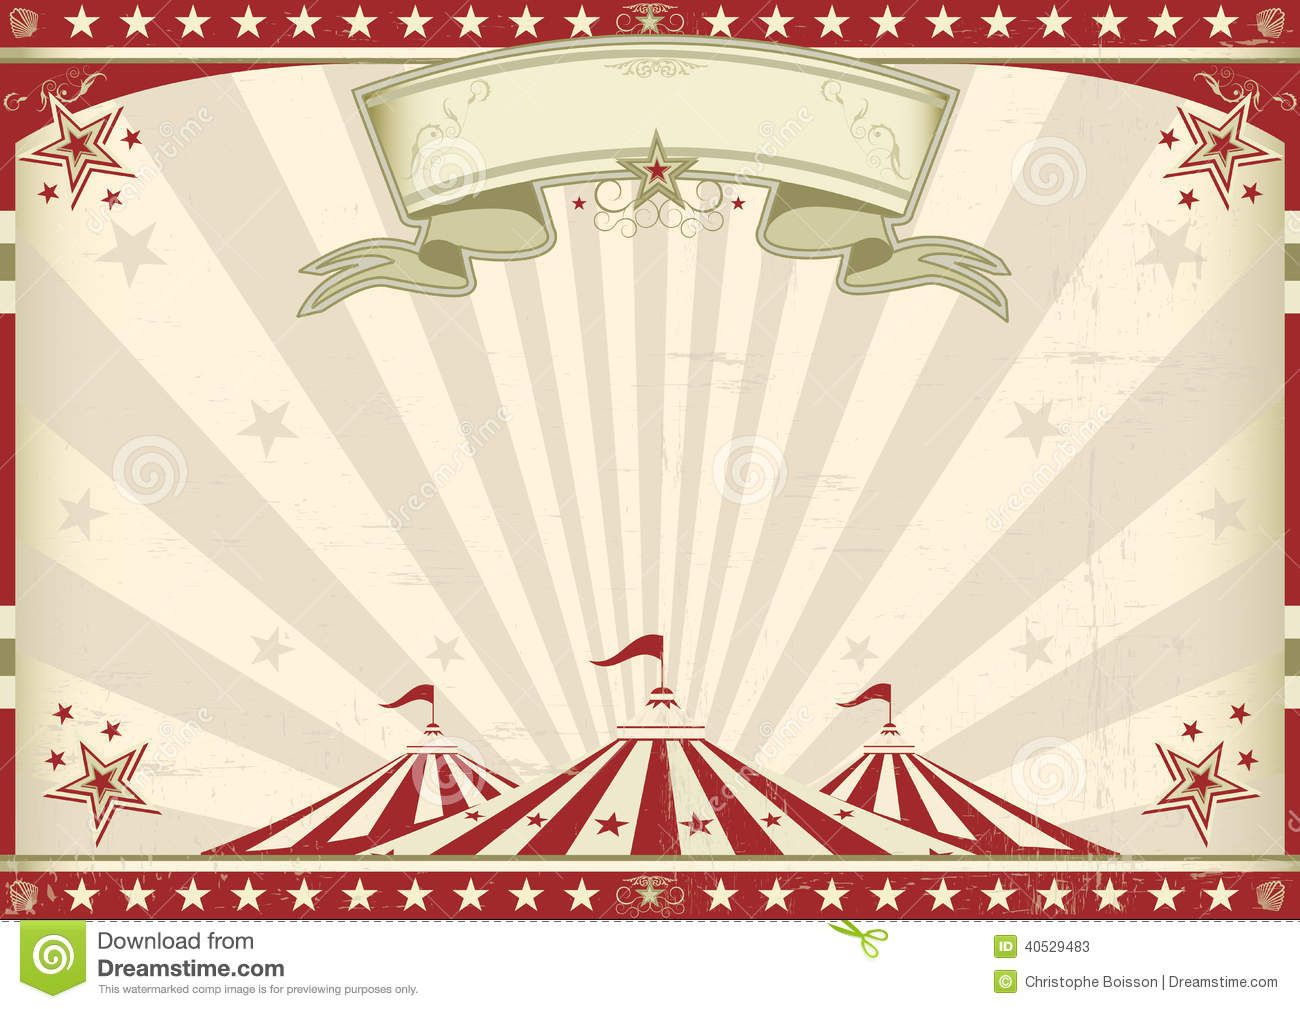 Horizontal Vintage Circus Vintage Circus Vintage Posters Circus Background